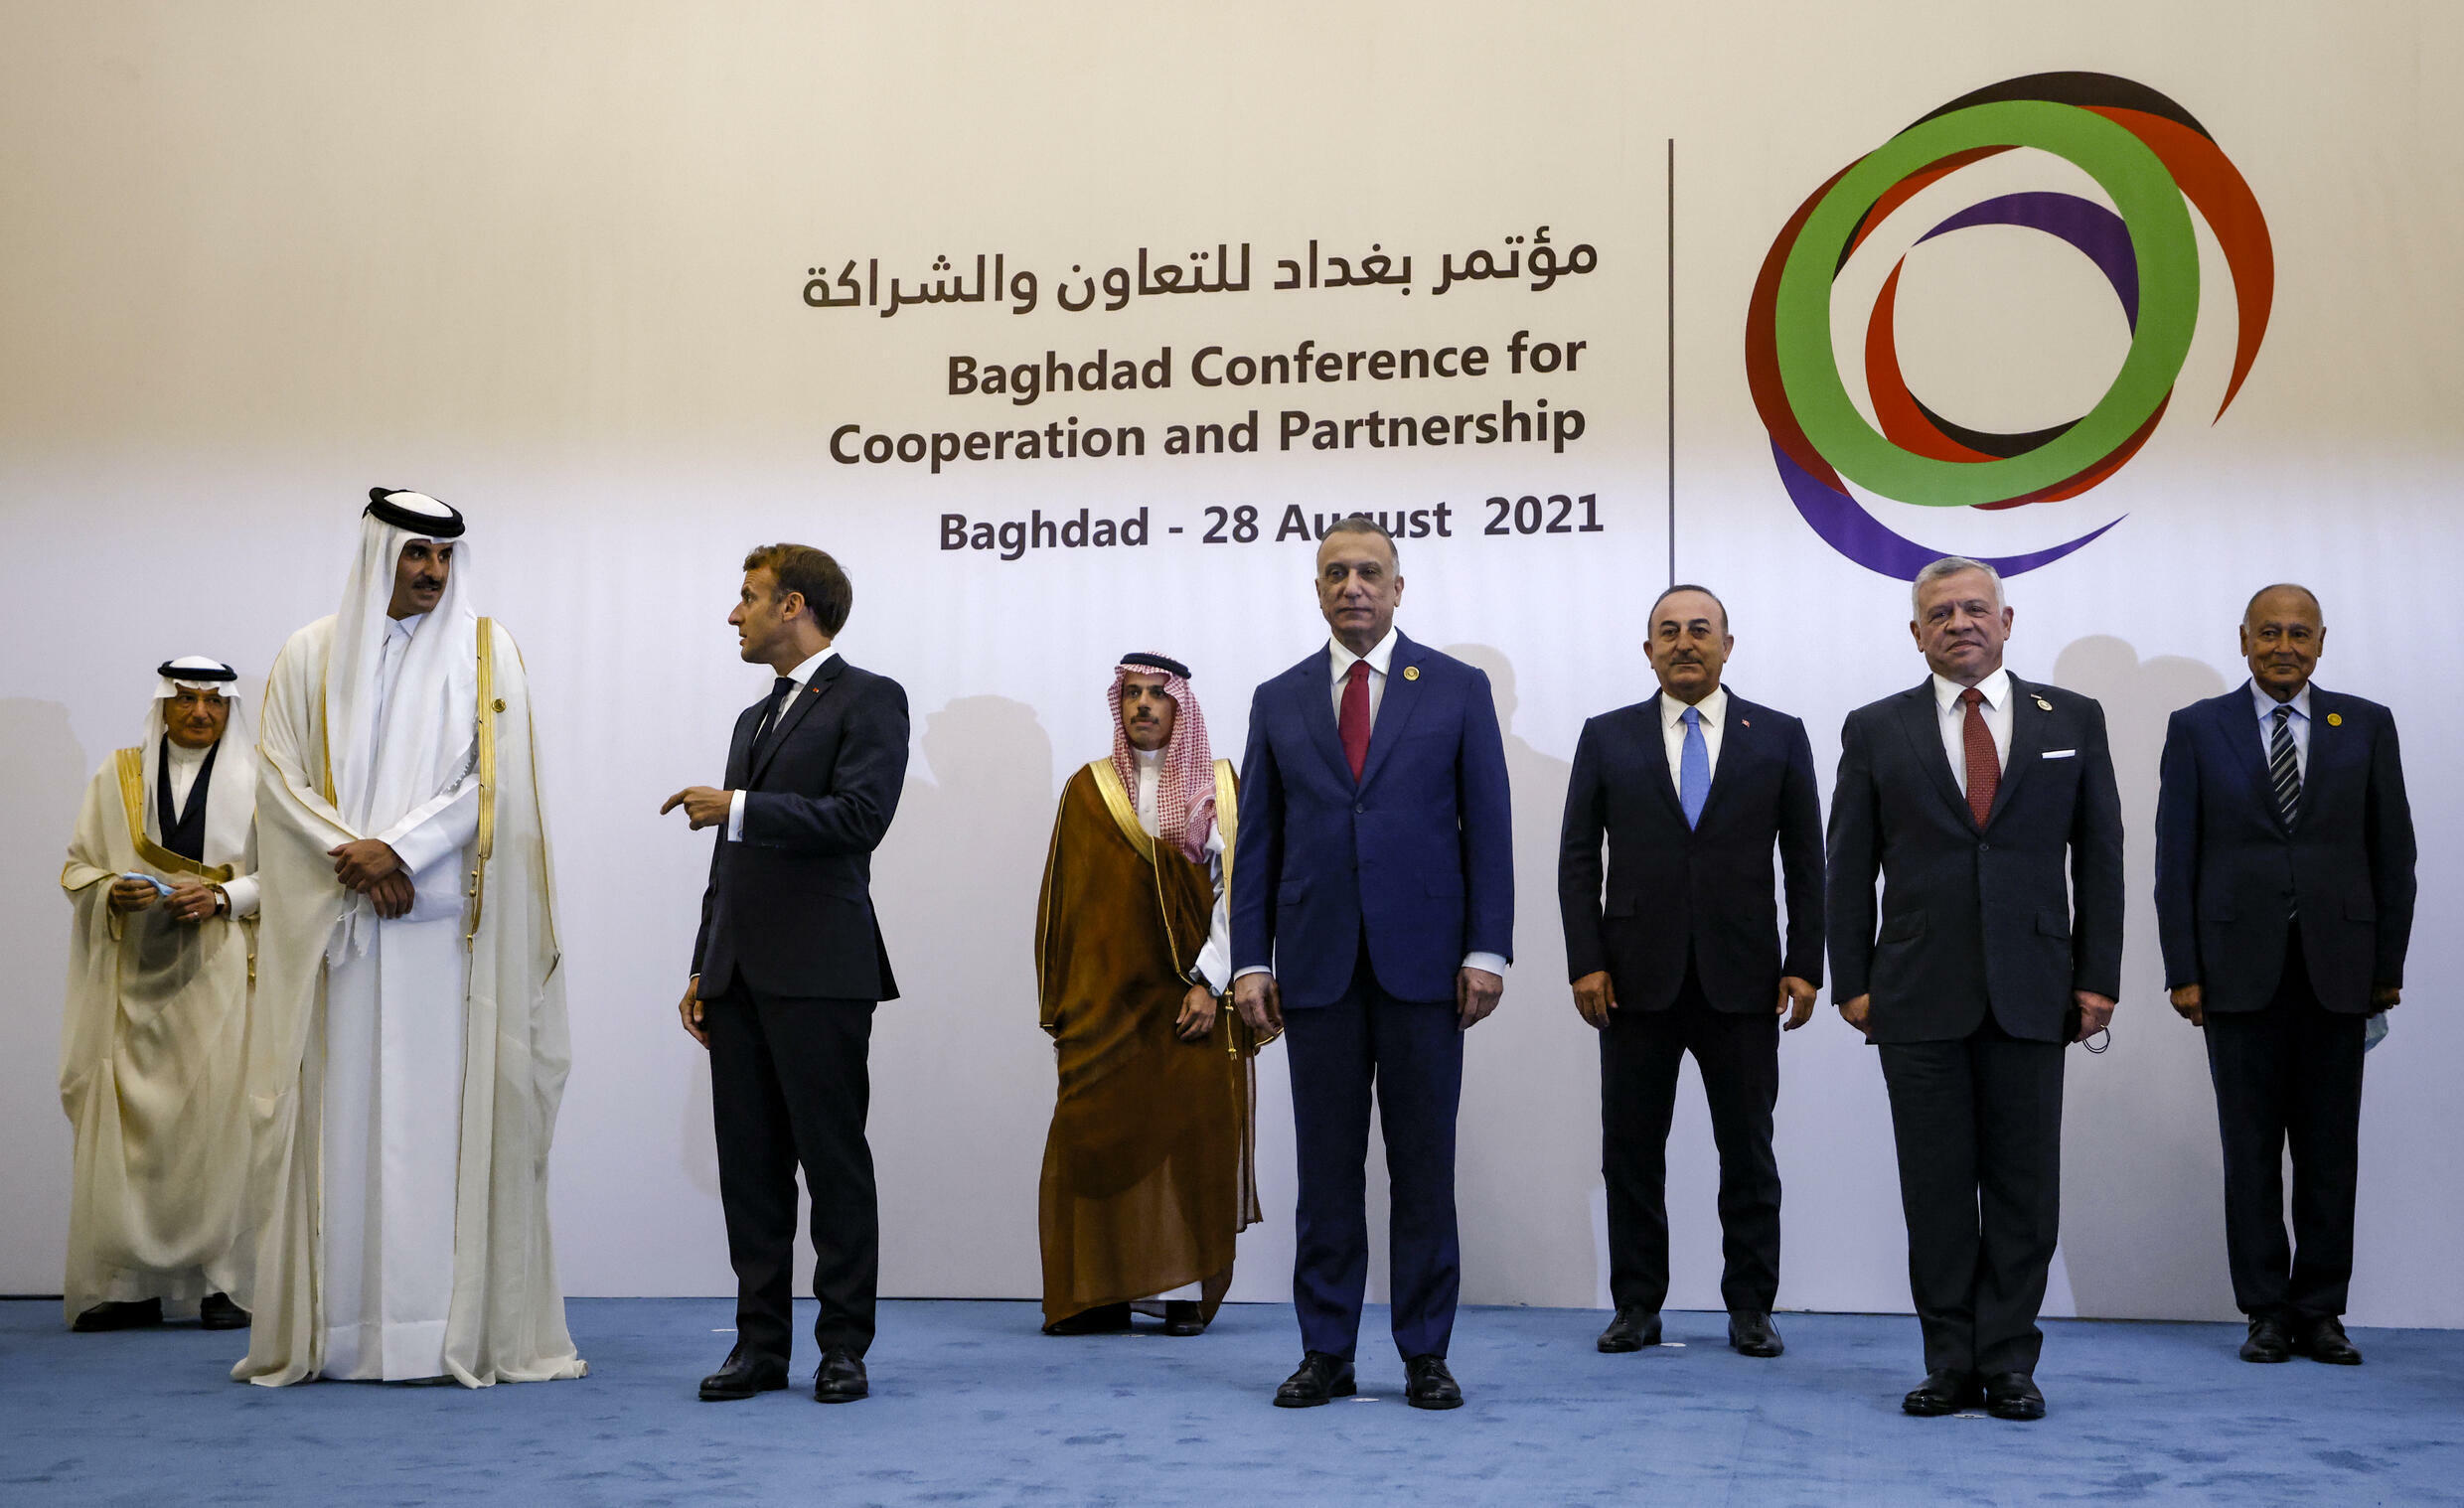 French President Emmanuel Macron (third from left) poses with other leaders at a regional meeting in Baghdad, August 28, 2021